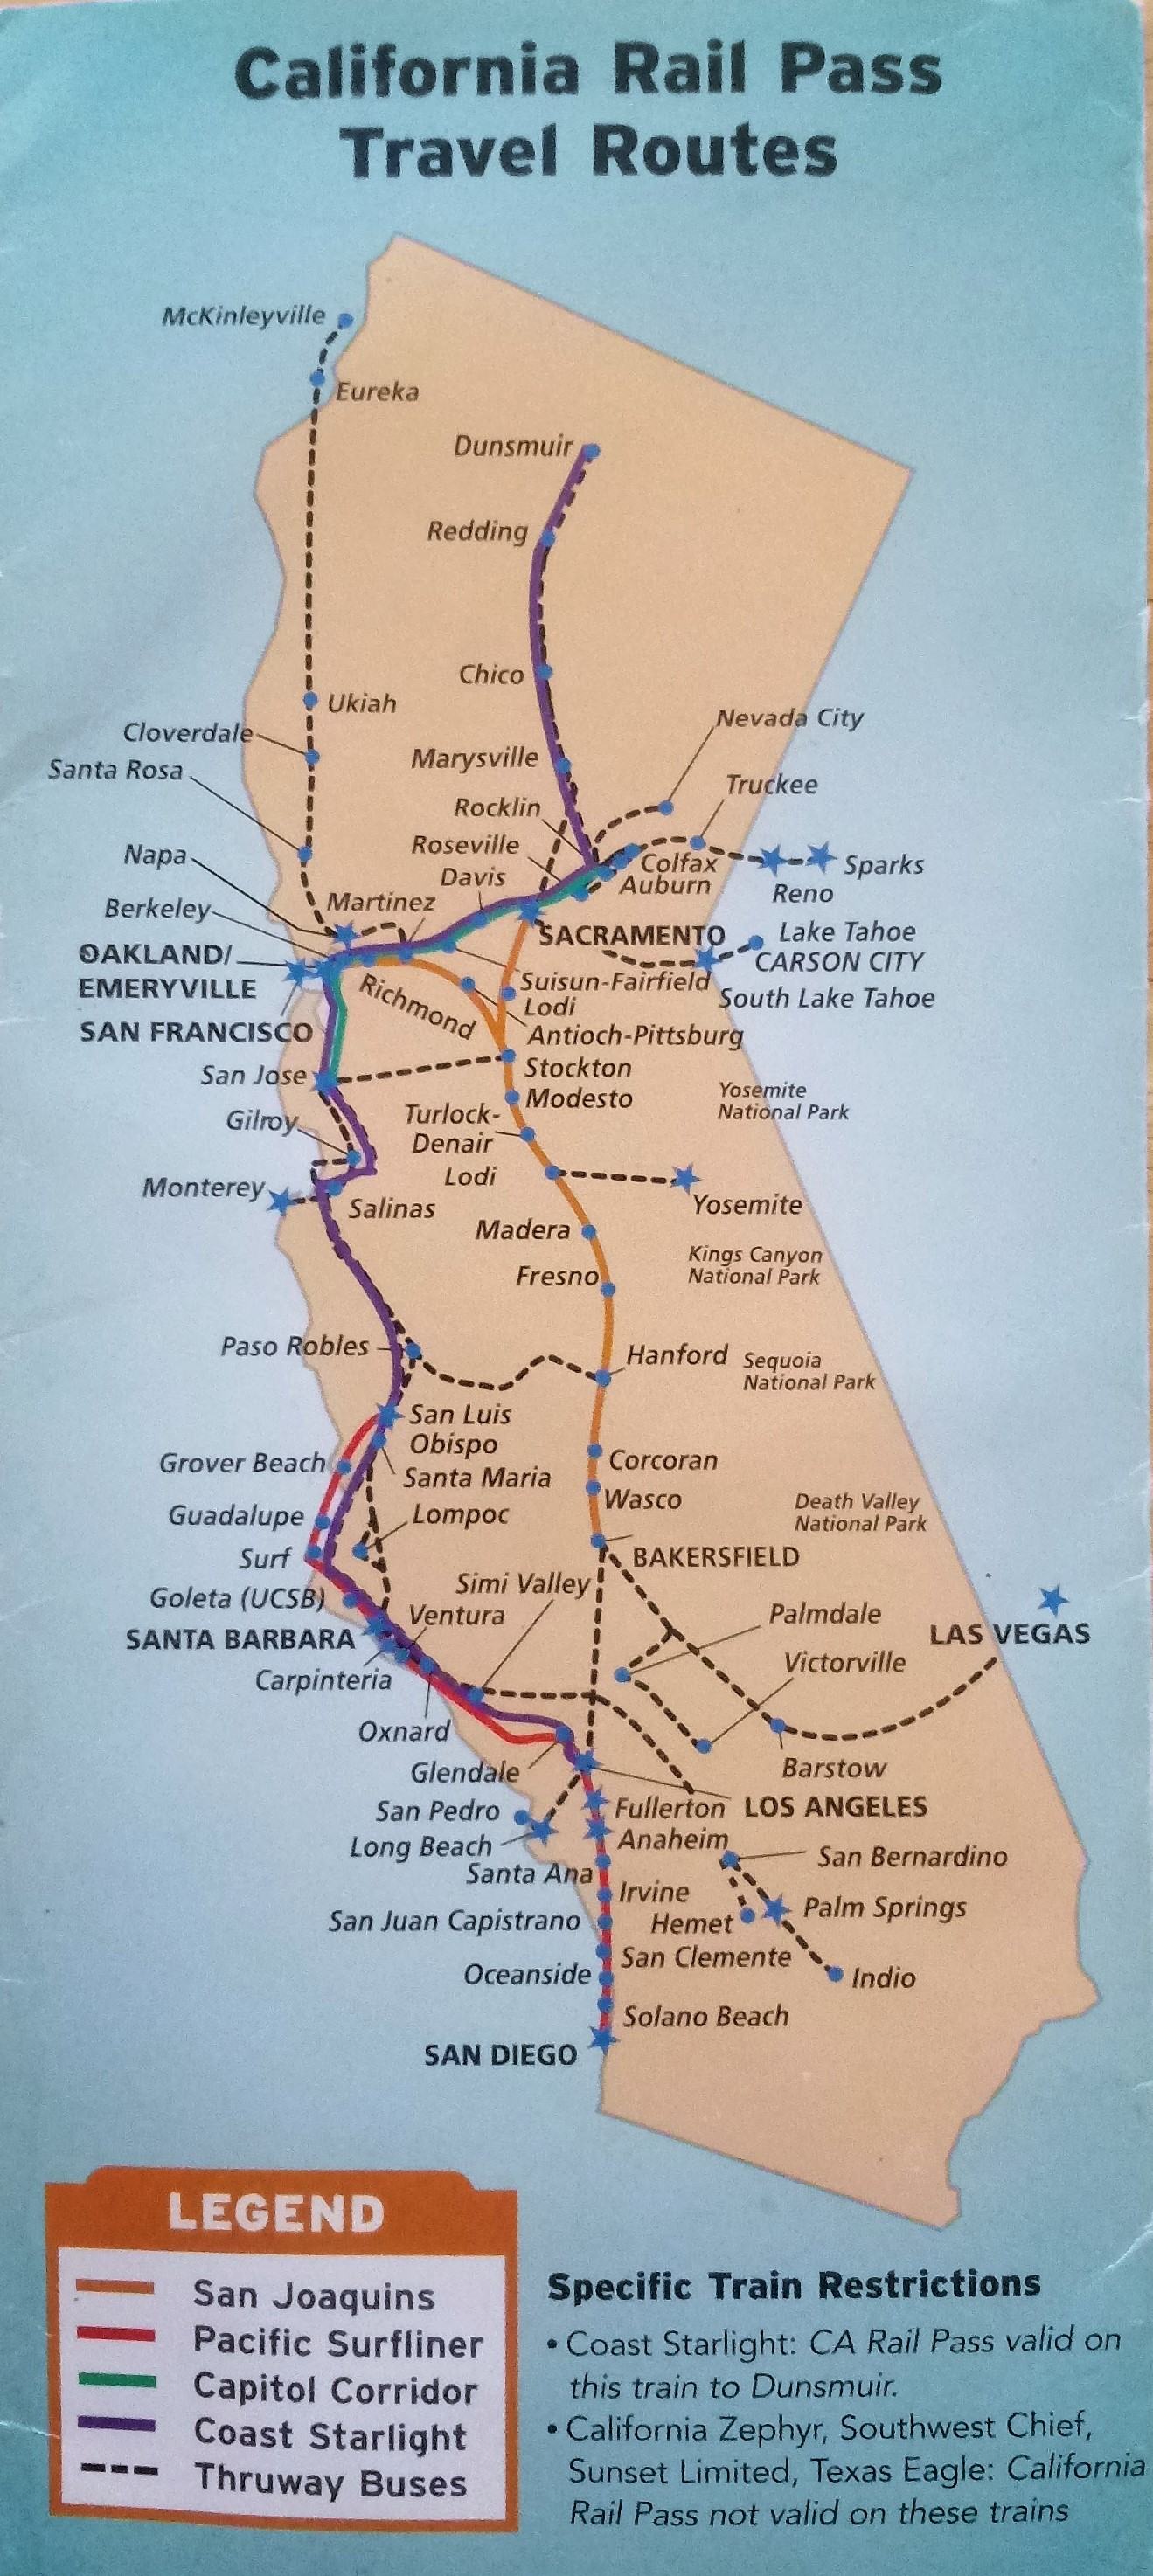 California by Train | The Green Stars Project on california tourist map, california northern railroad map, california waterfalls map, japan bullet train map, northern california train map, california train vacations, california high speed train map, california railway map, california amusement parks map, california train map freight tracking, ca bullet train map, california layout map, california missions map by train, california bullet train,